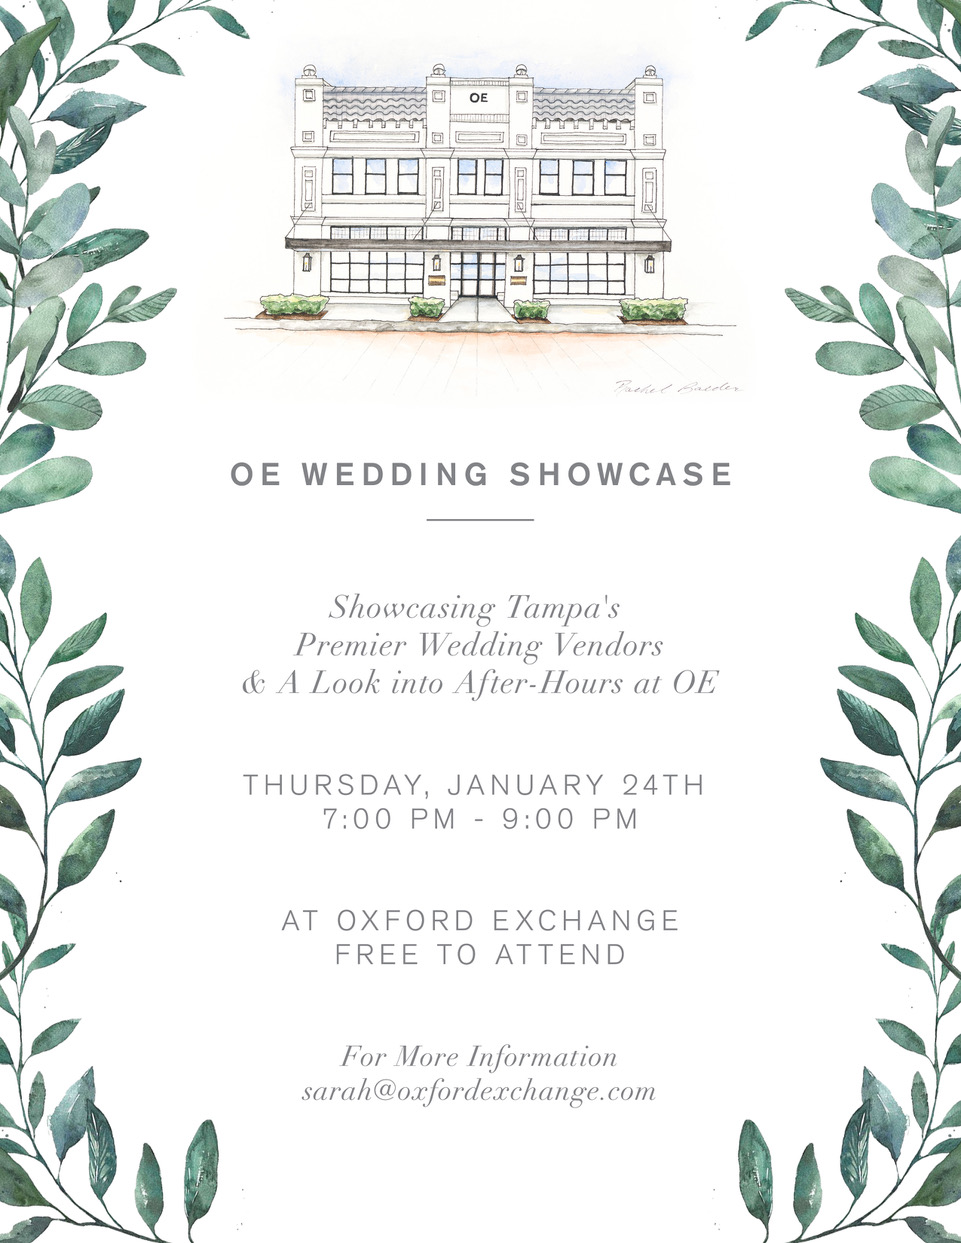 Oxford Exchange Bridal Showcase Tampa Best Wedding Vendors Bridal Shop